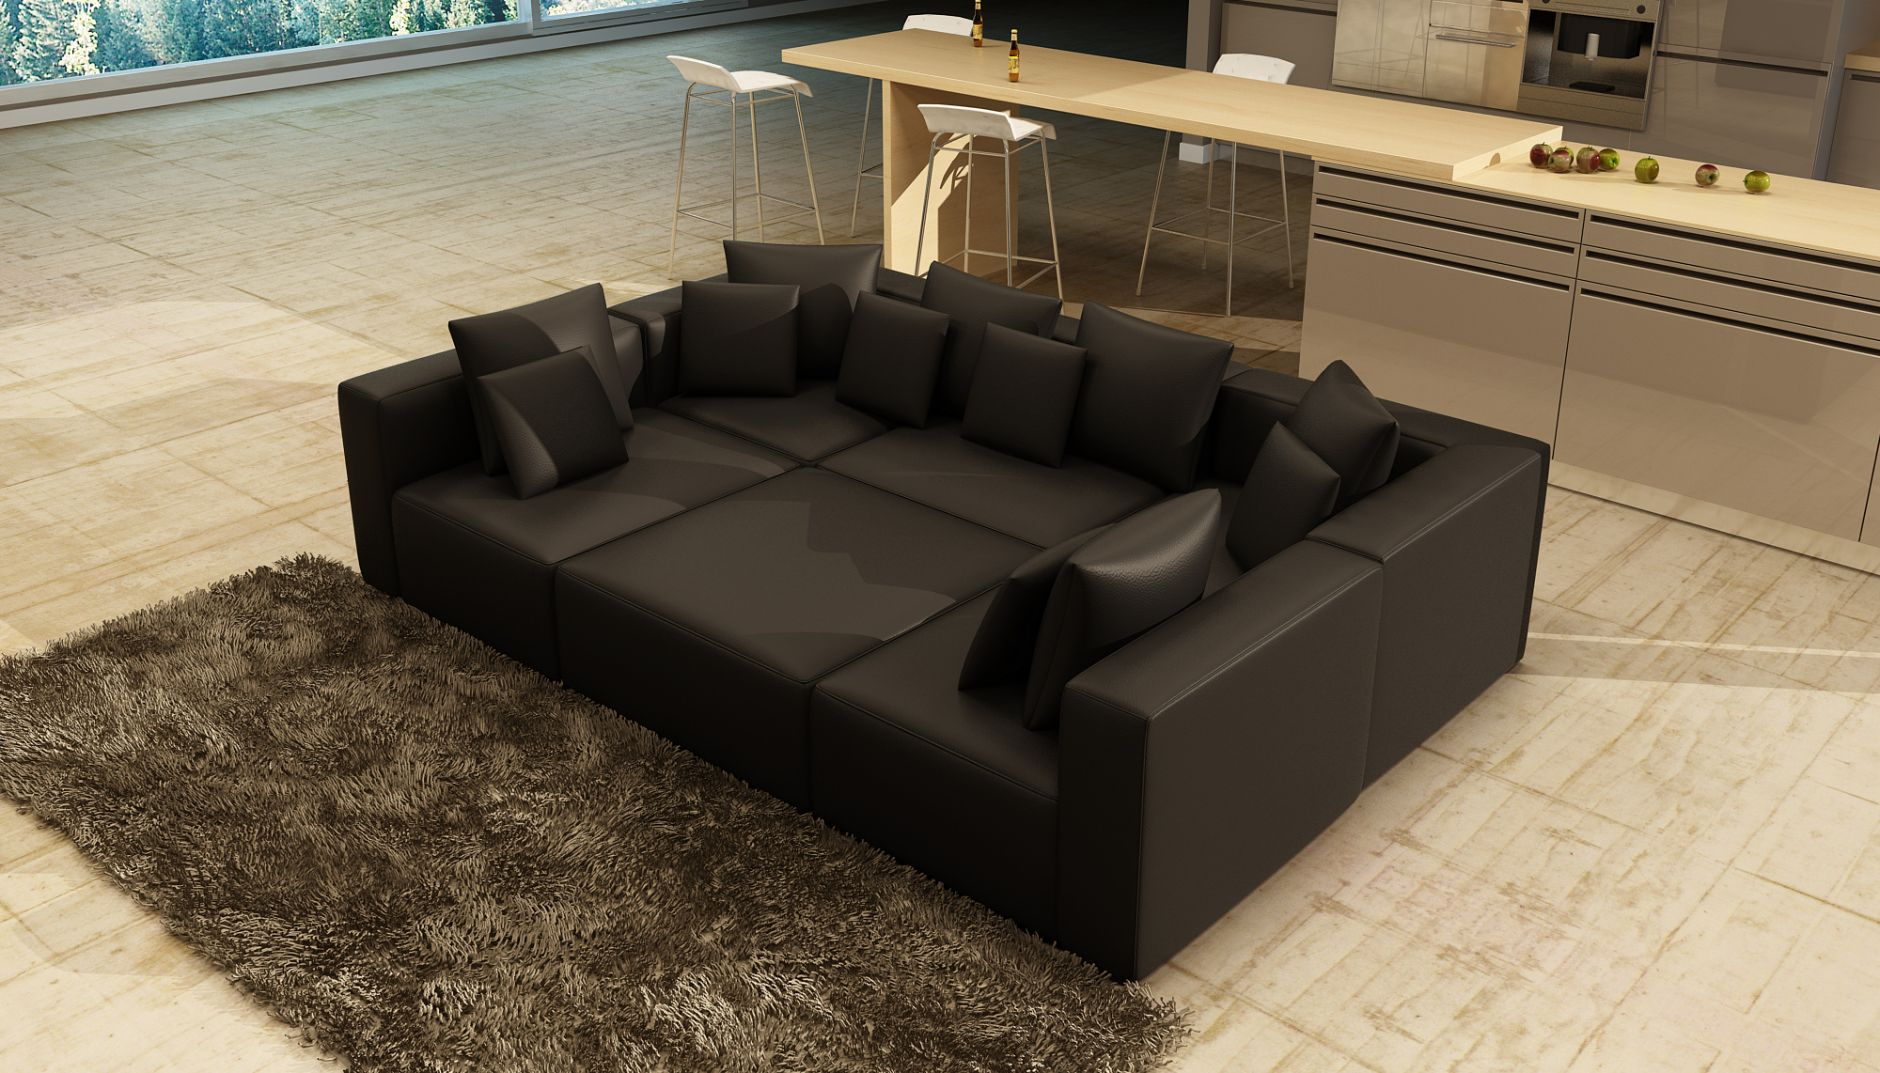 polsterm bel schnittsofa modell 206die m bel aus italien. Black Bedroom Furniture Sets. Home Design Ideas